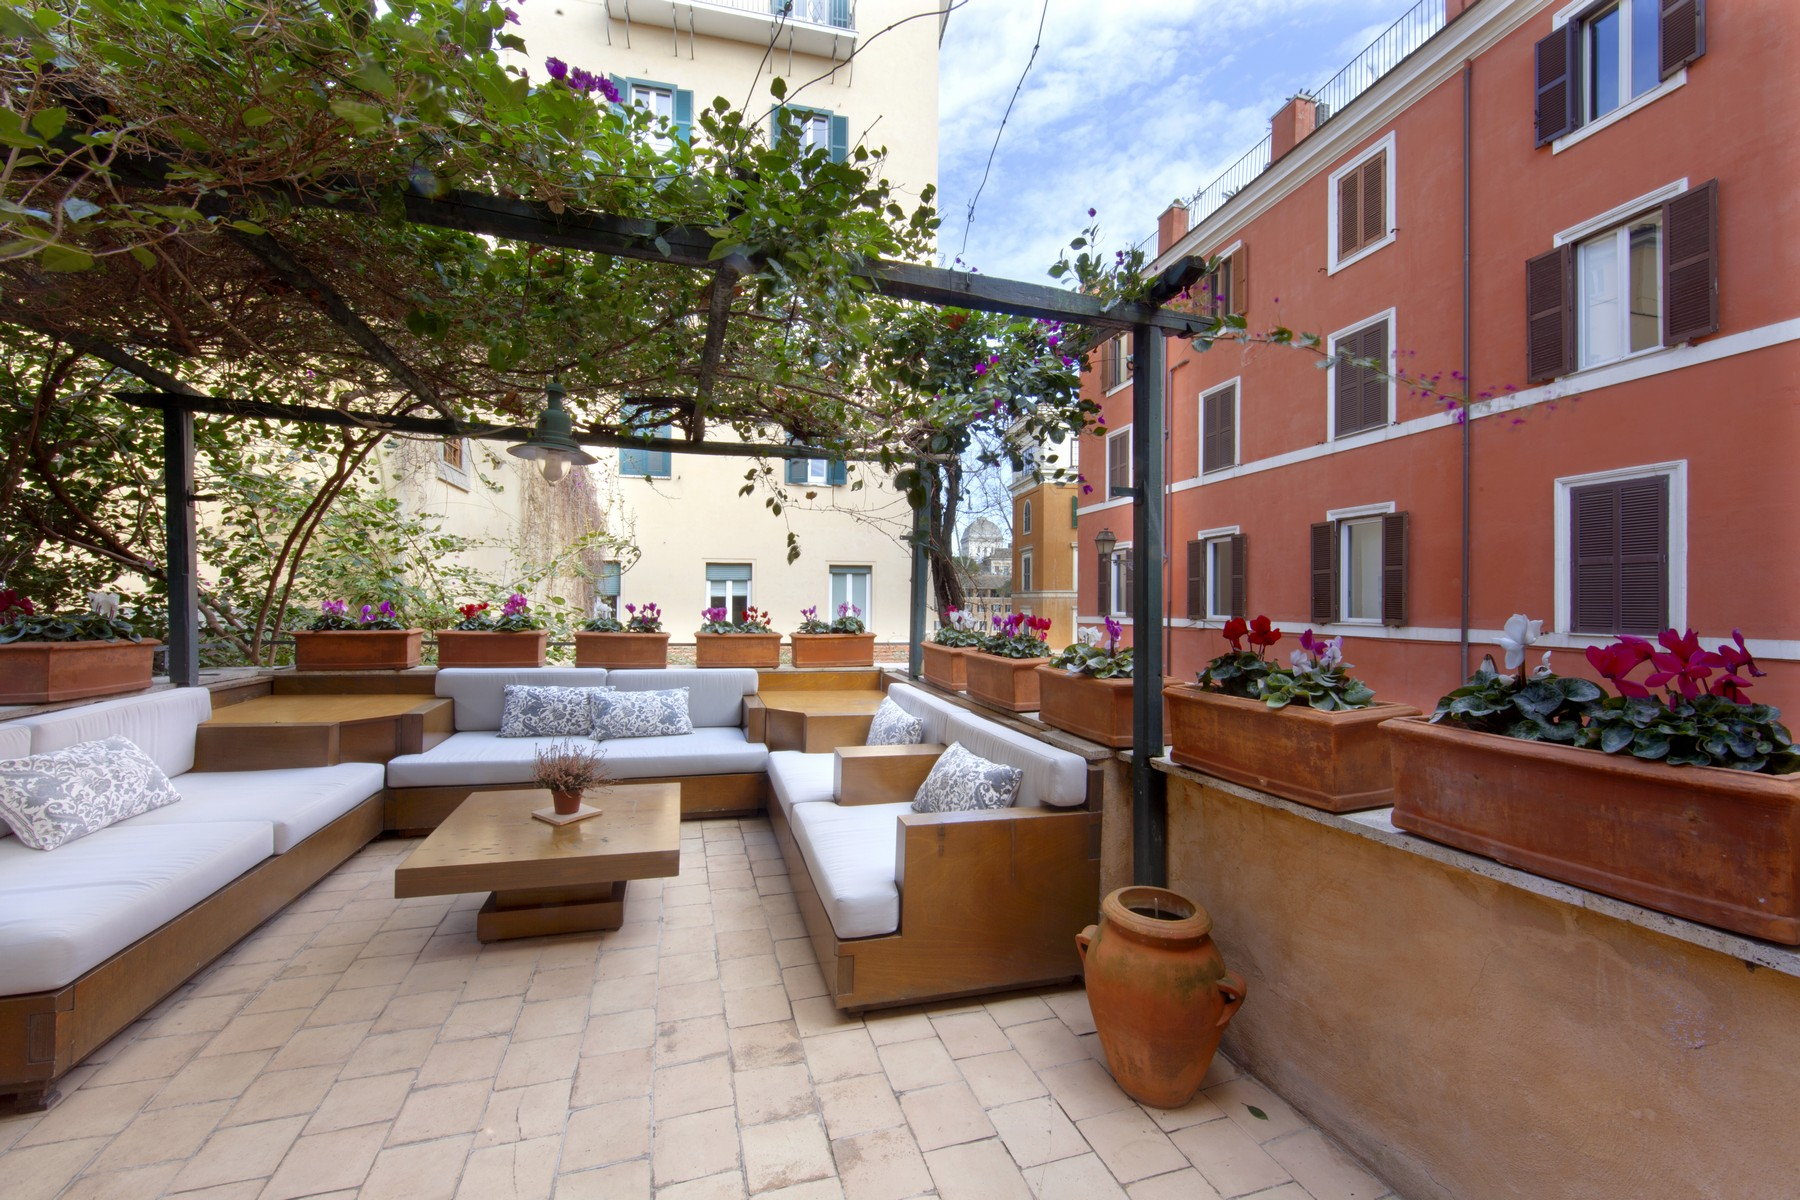 Single Family Home for Rent at Charming independent building of the medieval ages Vicolo della Luce Rome, Rome 00195 Italy